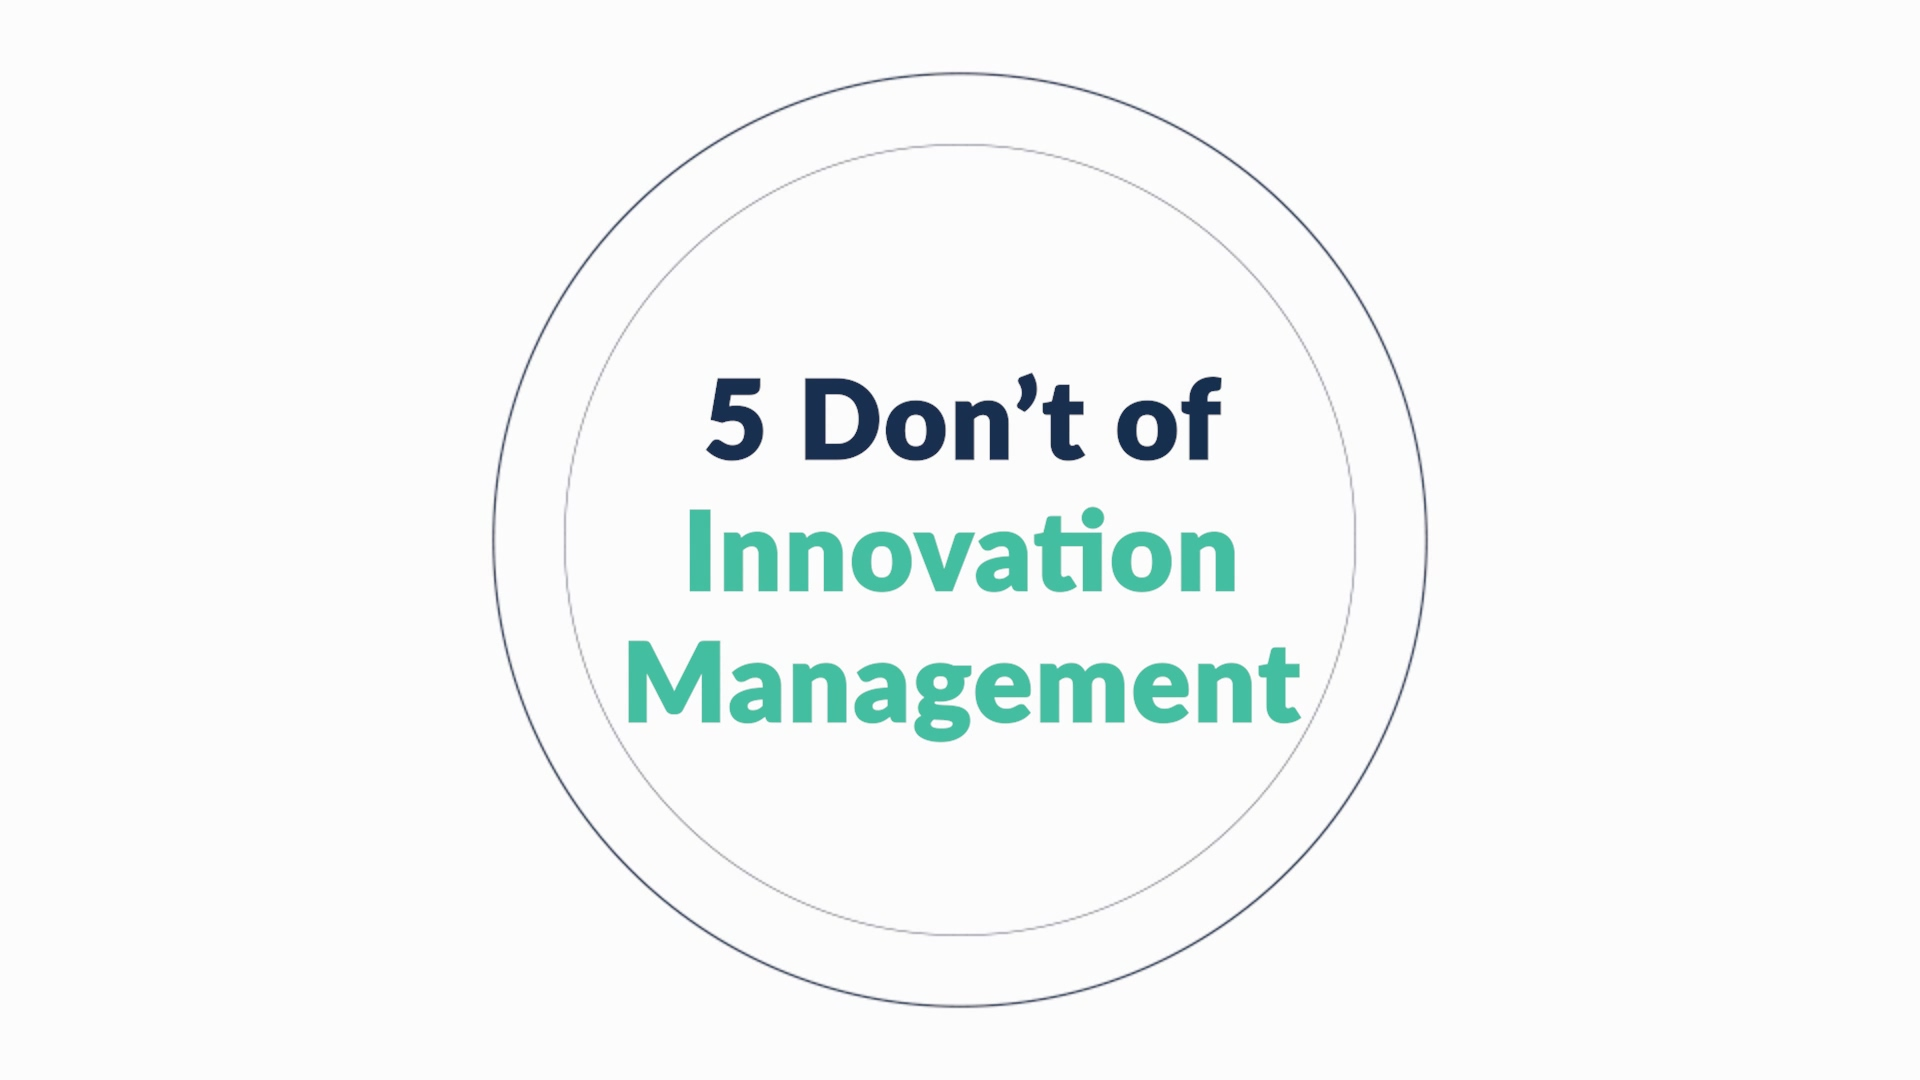 Idea Pipeline - 5 Donts of Innovation Management